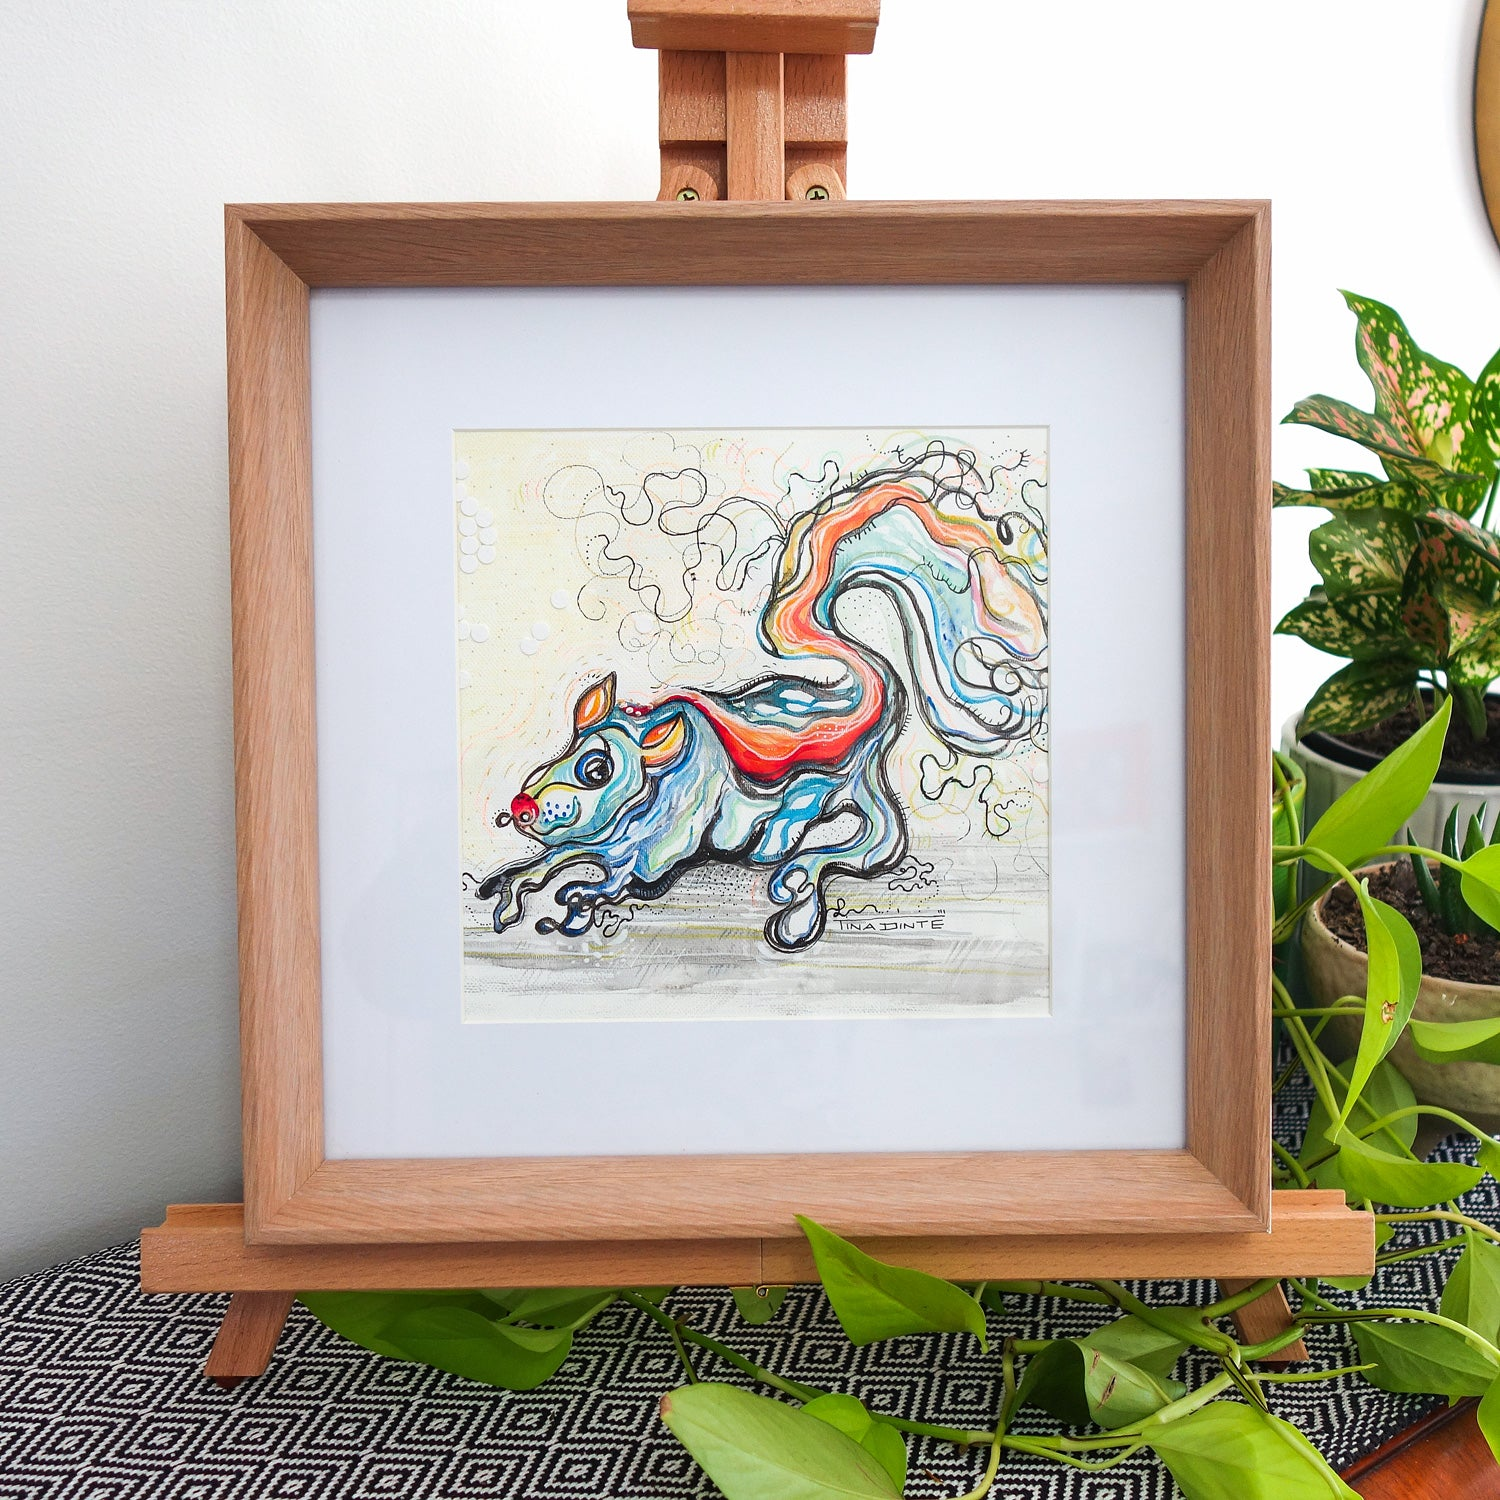 Sam Squirrel Framed Original Illustration